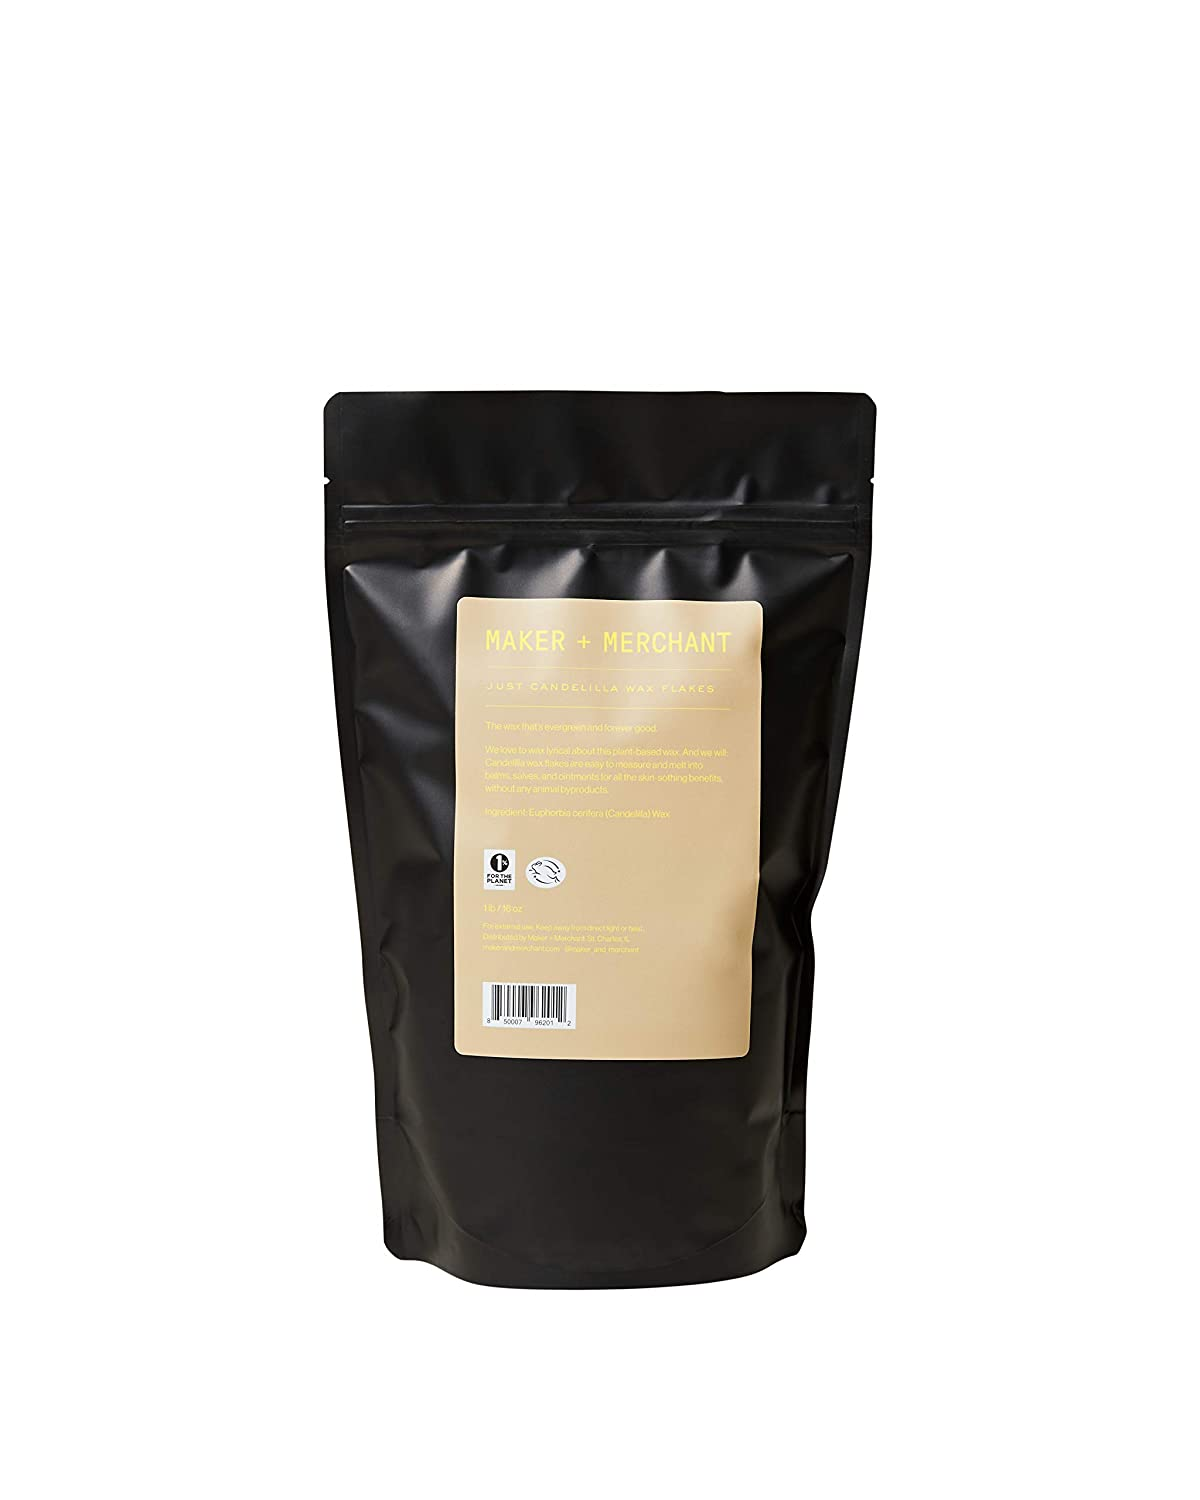 Maker and Merchant 100% Pure Candelilla Wax (1lb)- Sustainable, Vegan, Perfect for DIY Skincare